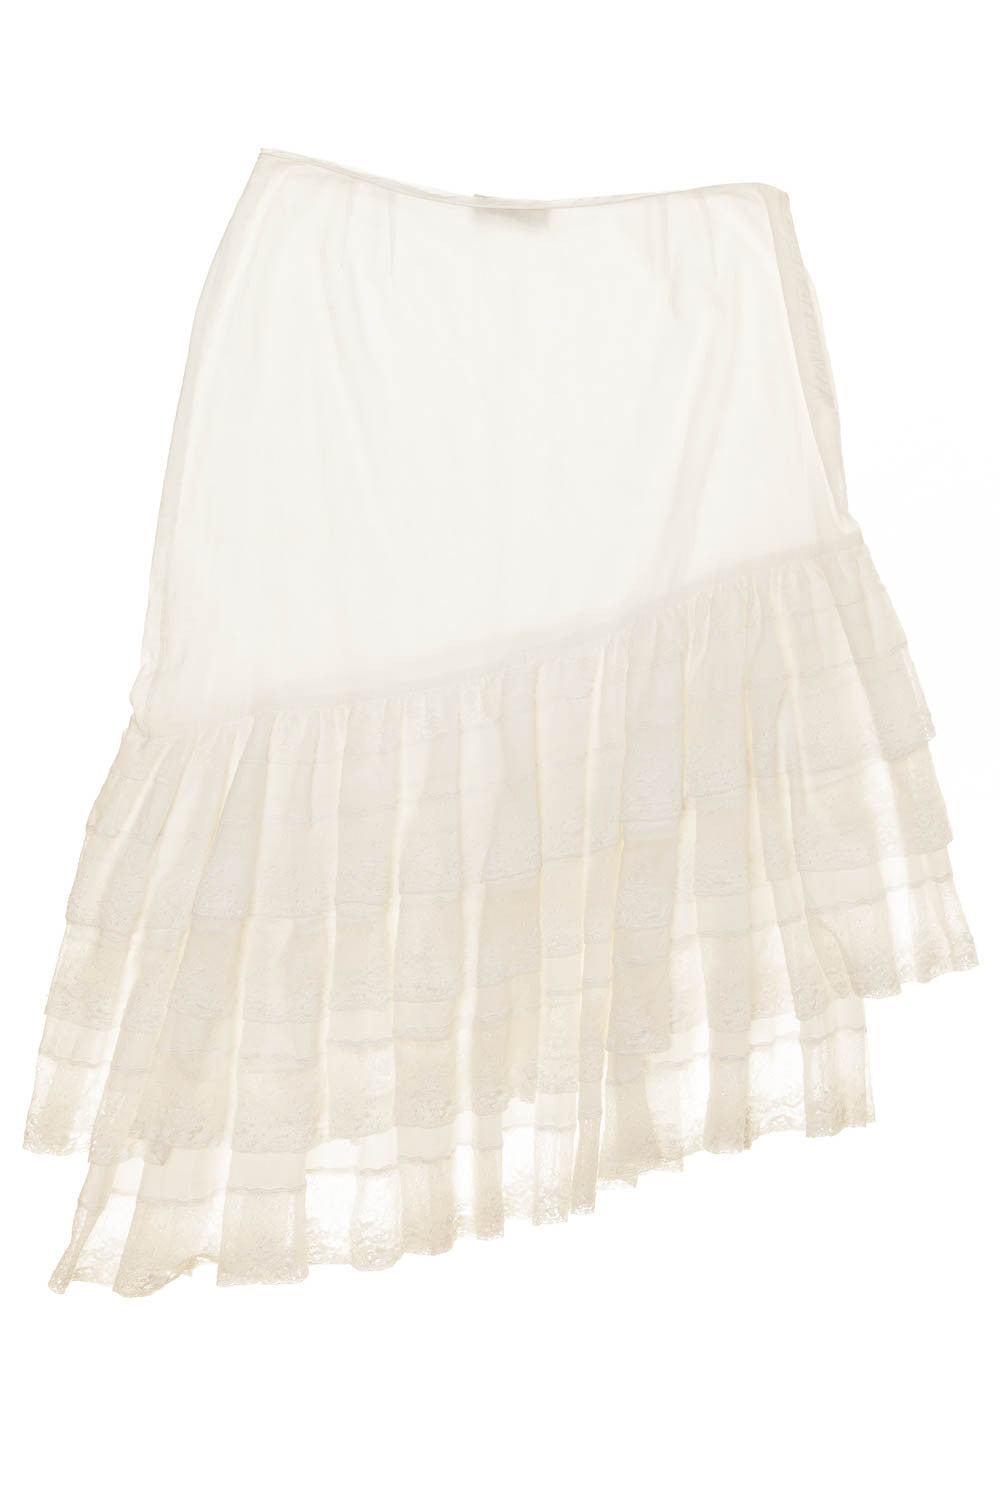 Blumarine - White Cotton Lace Asymmetrical Ruffle Skirt - IT 40